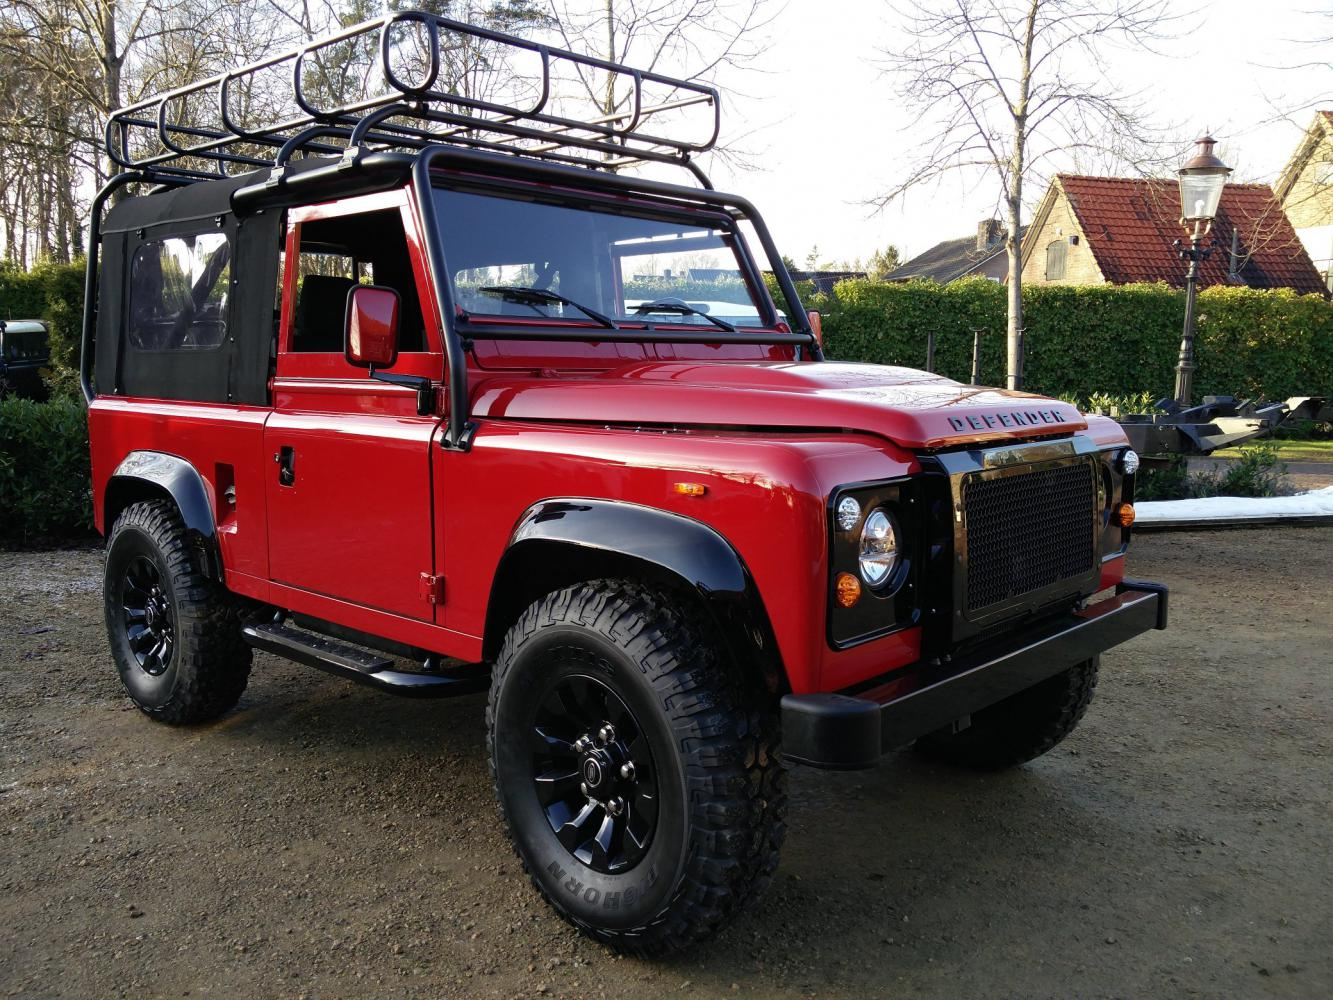 Click image for larger version  Name:1992 LR LHD Defender 90 Red 200 Tdi A ready right front.jpg Views:84 Size:262.6 KB ID:336777